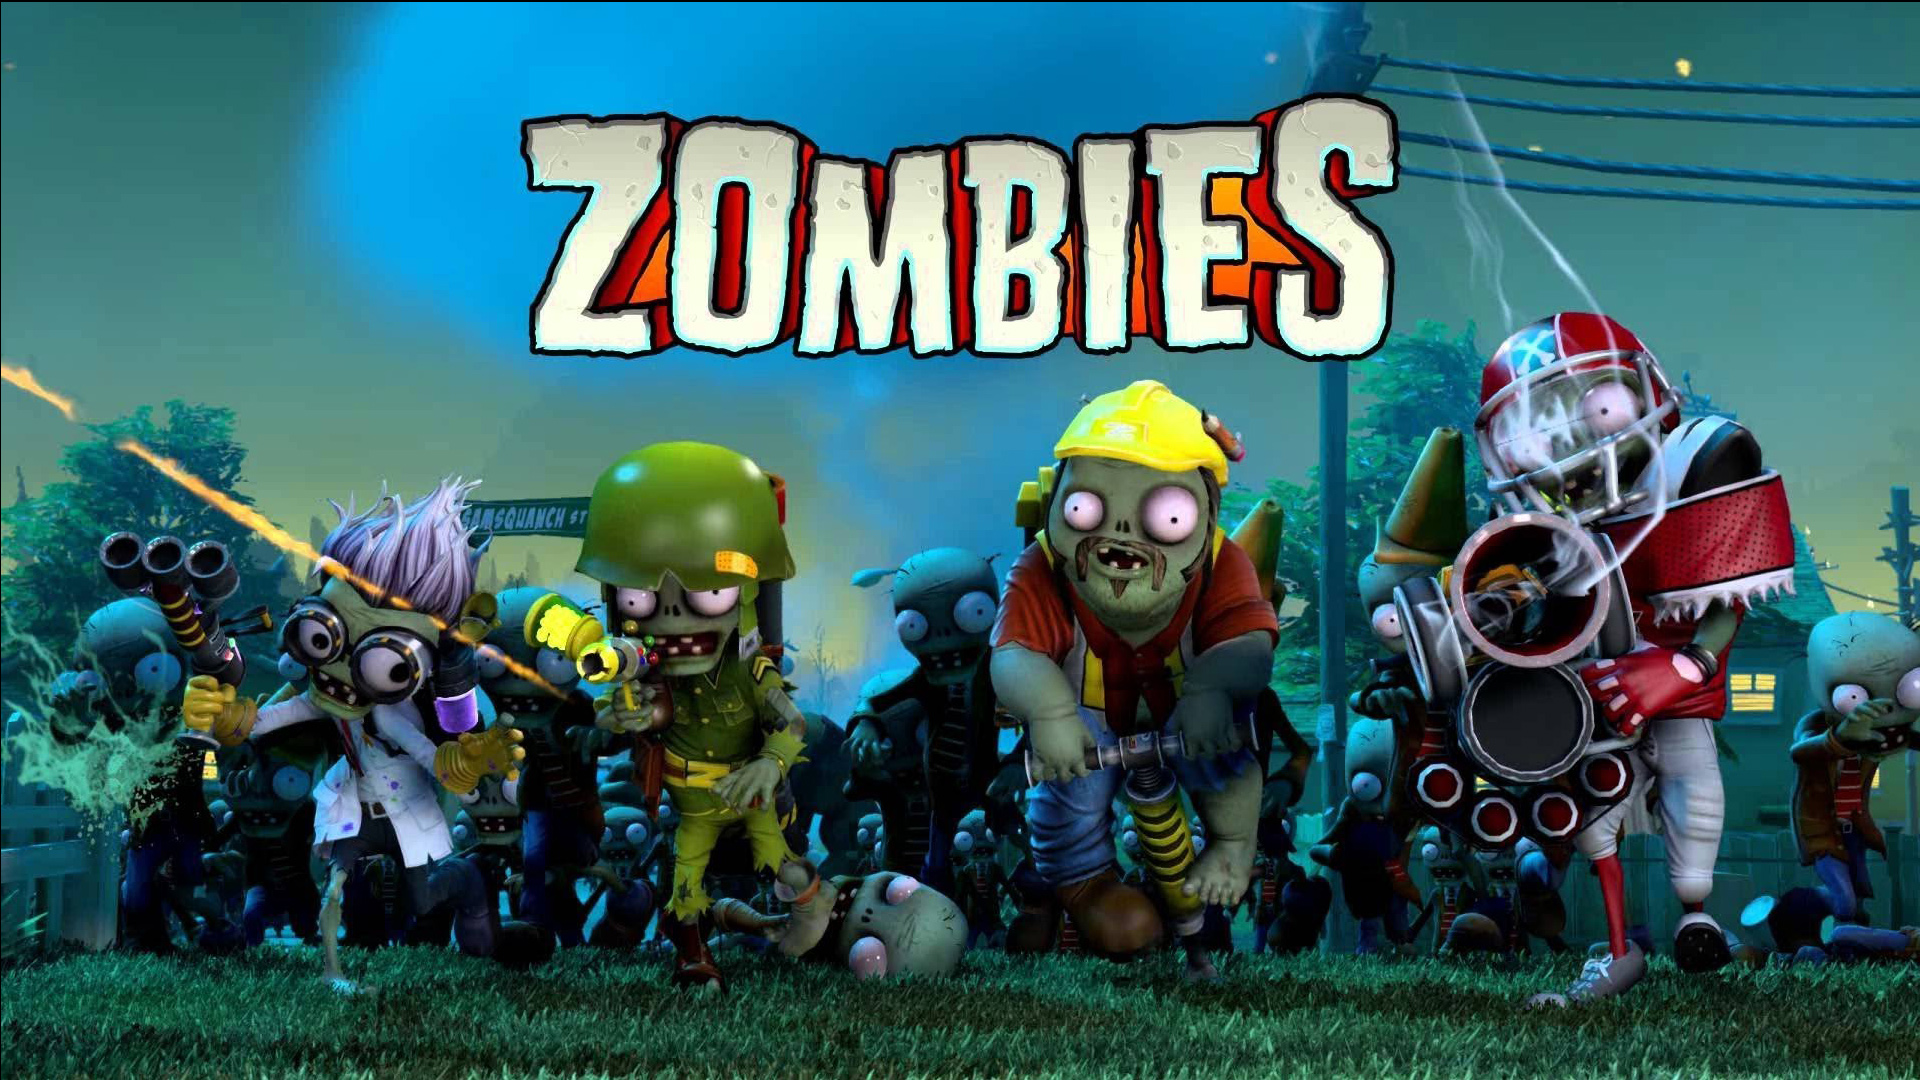 Plants vs zombies garden warfare full hd fondo de for Plante vs zombie garden warfare 2